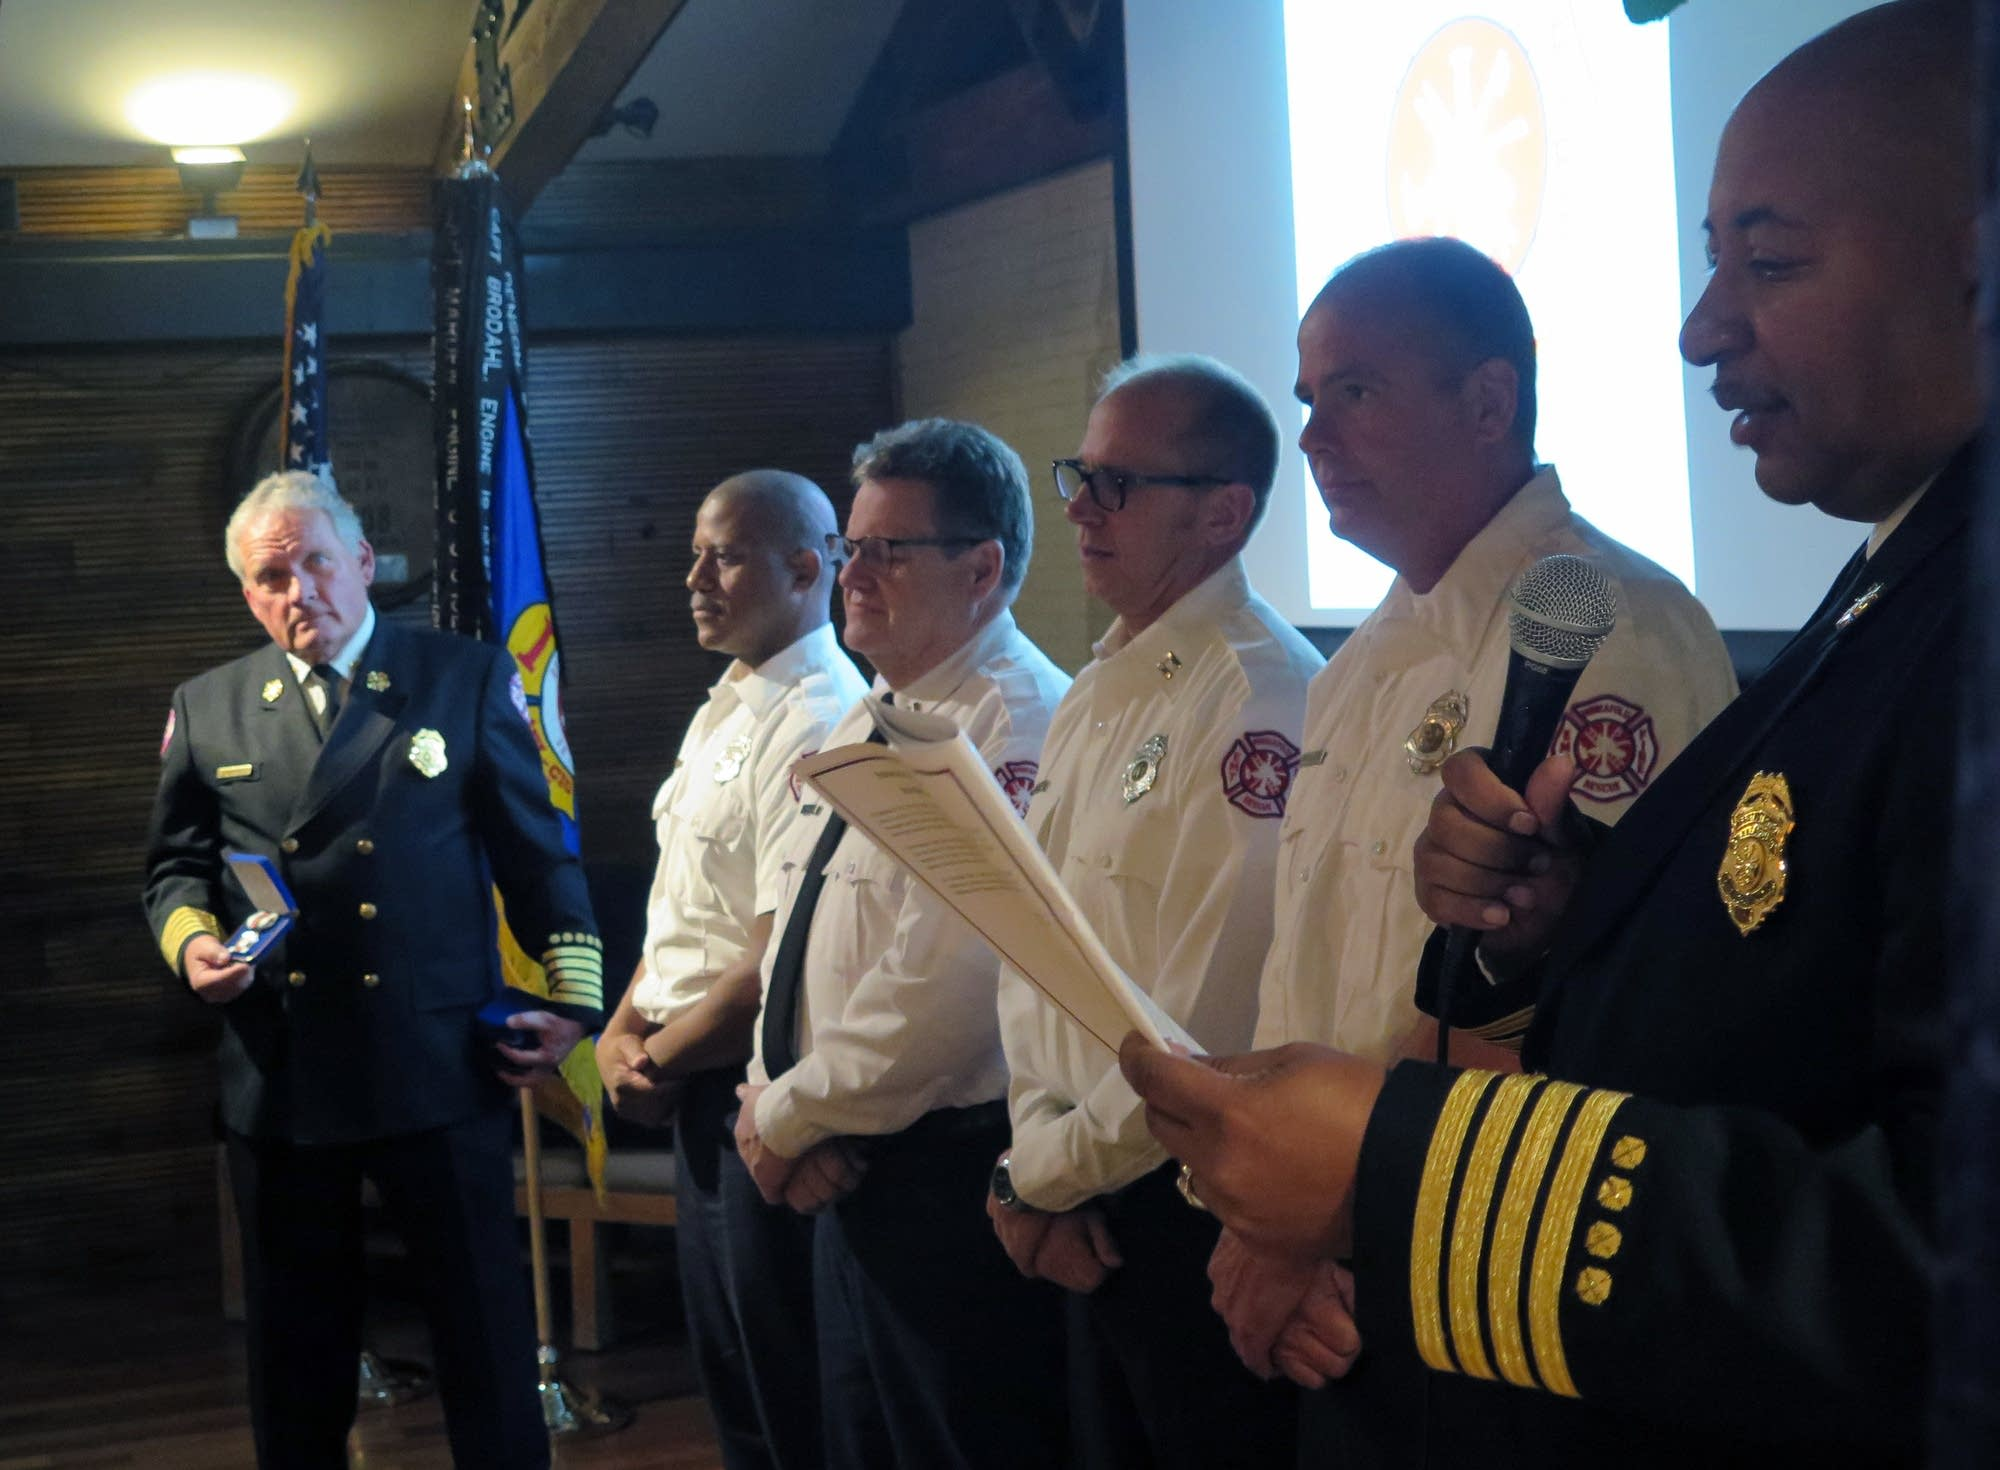 Firefighters honored for rescuing three men.